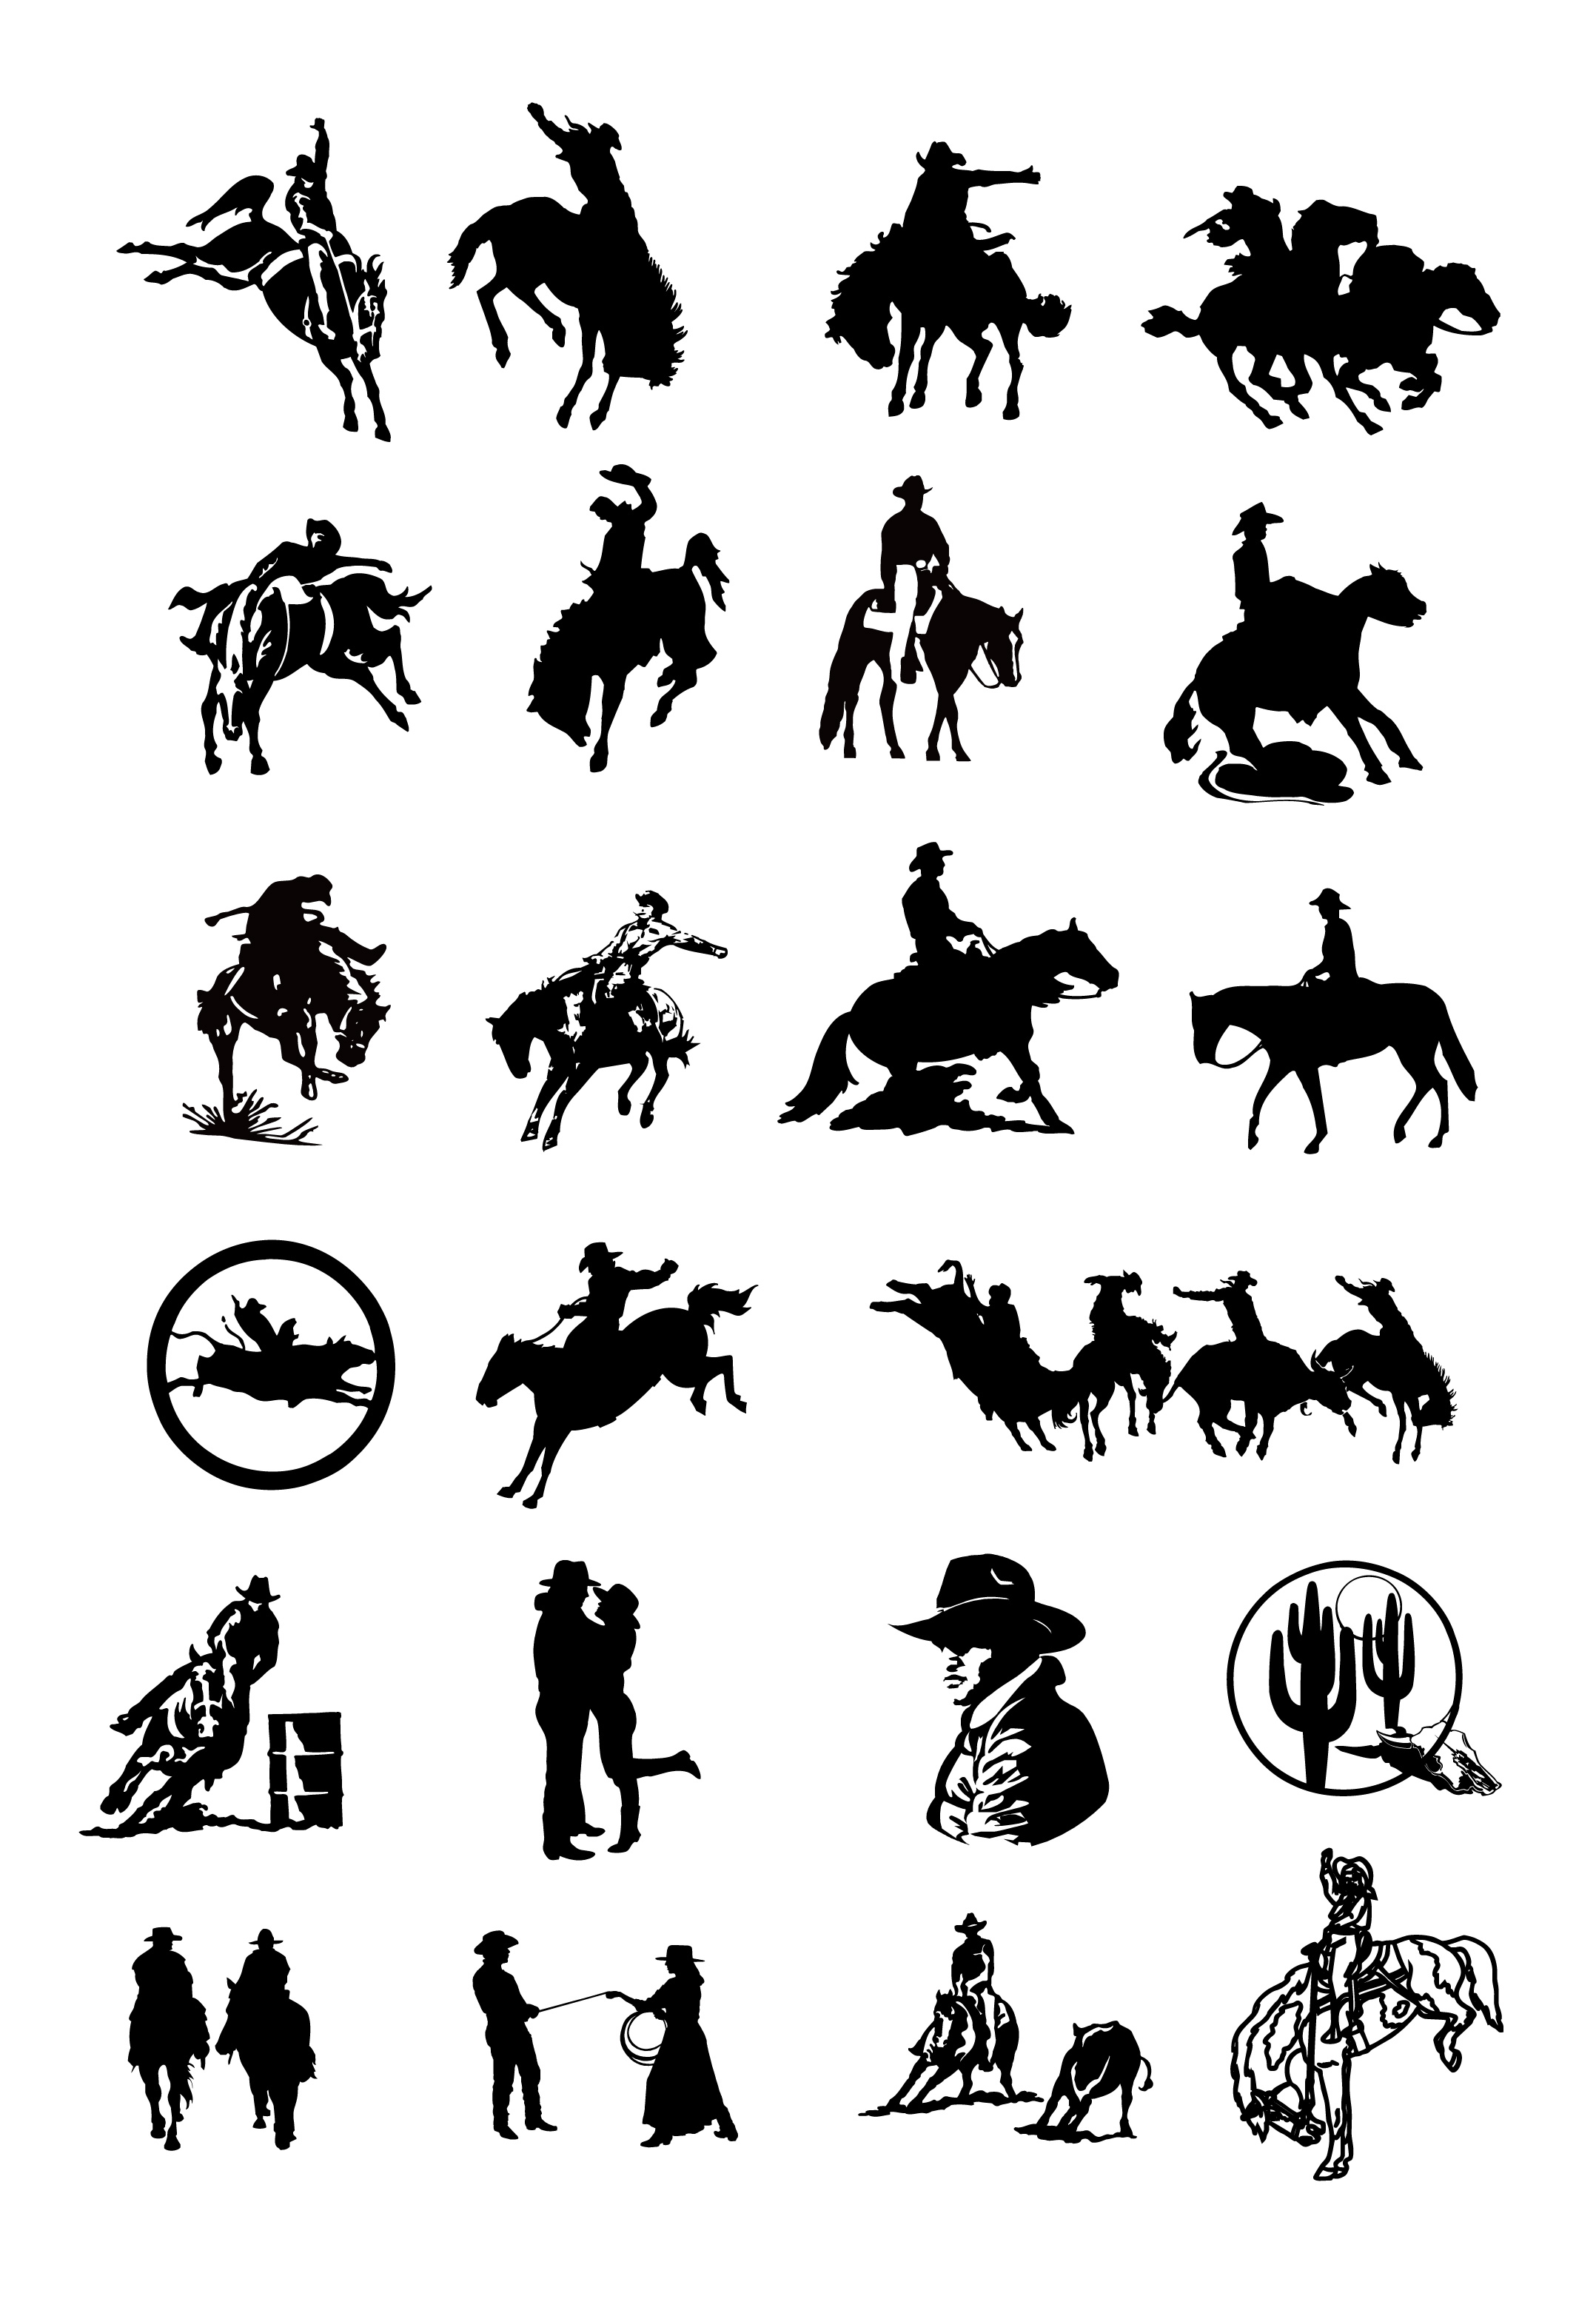 free vector clipart-free vector clipart-18